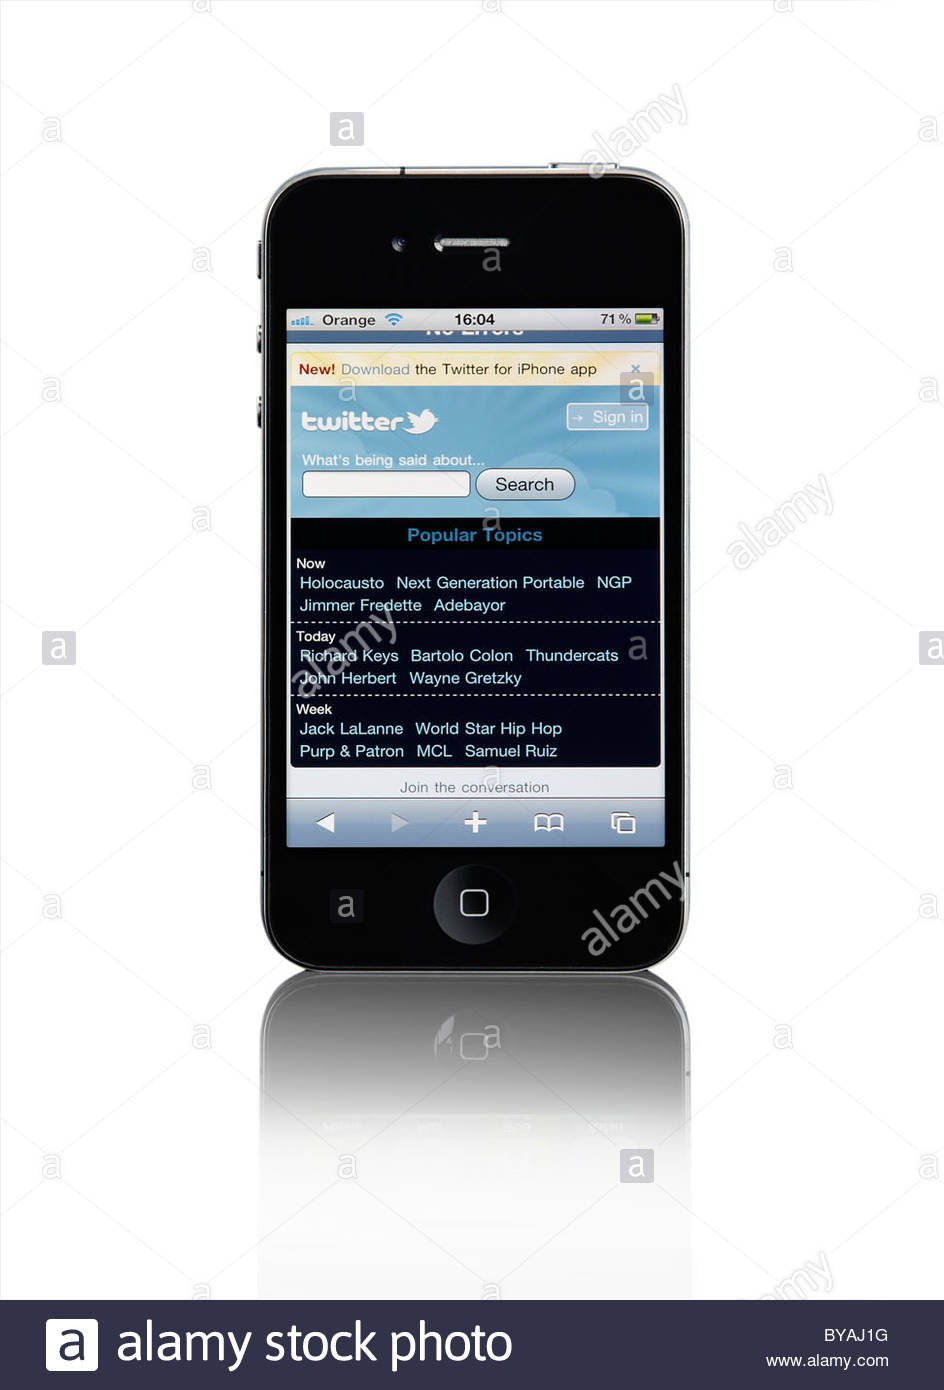 Apple iPhone 4 3G mobile phone with Twitter Website touch